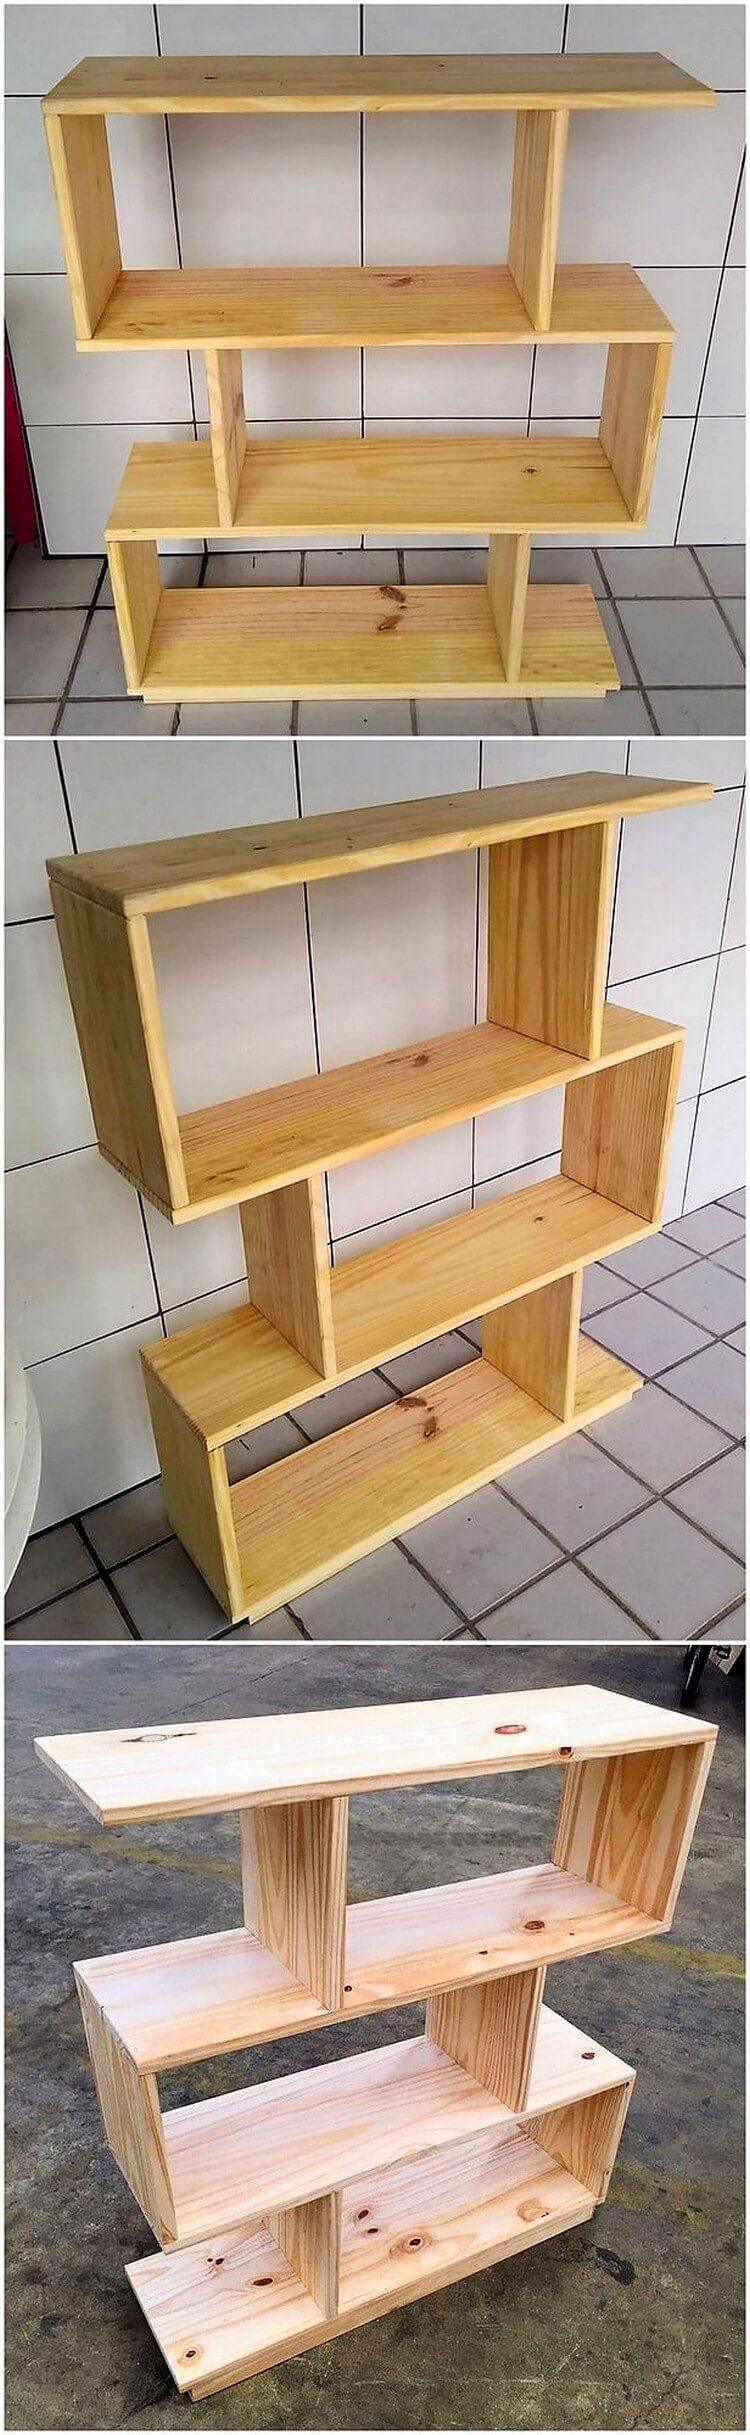 Wood Pallet Shelving Unit